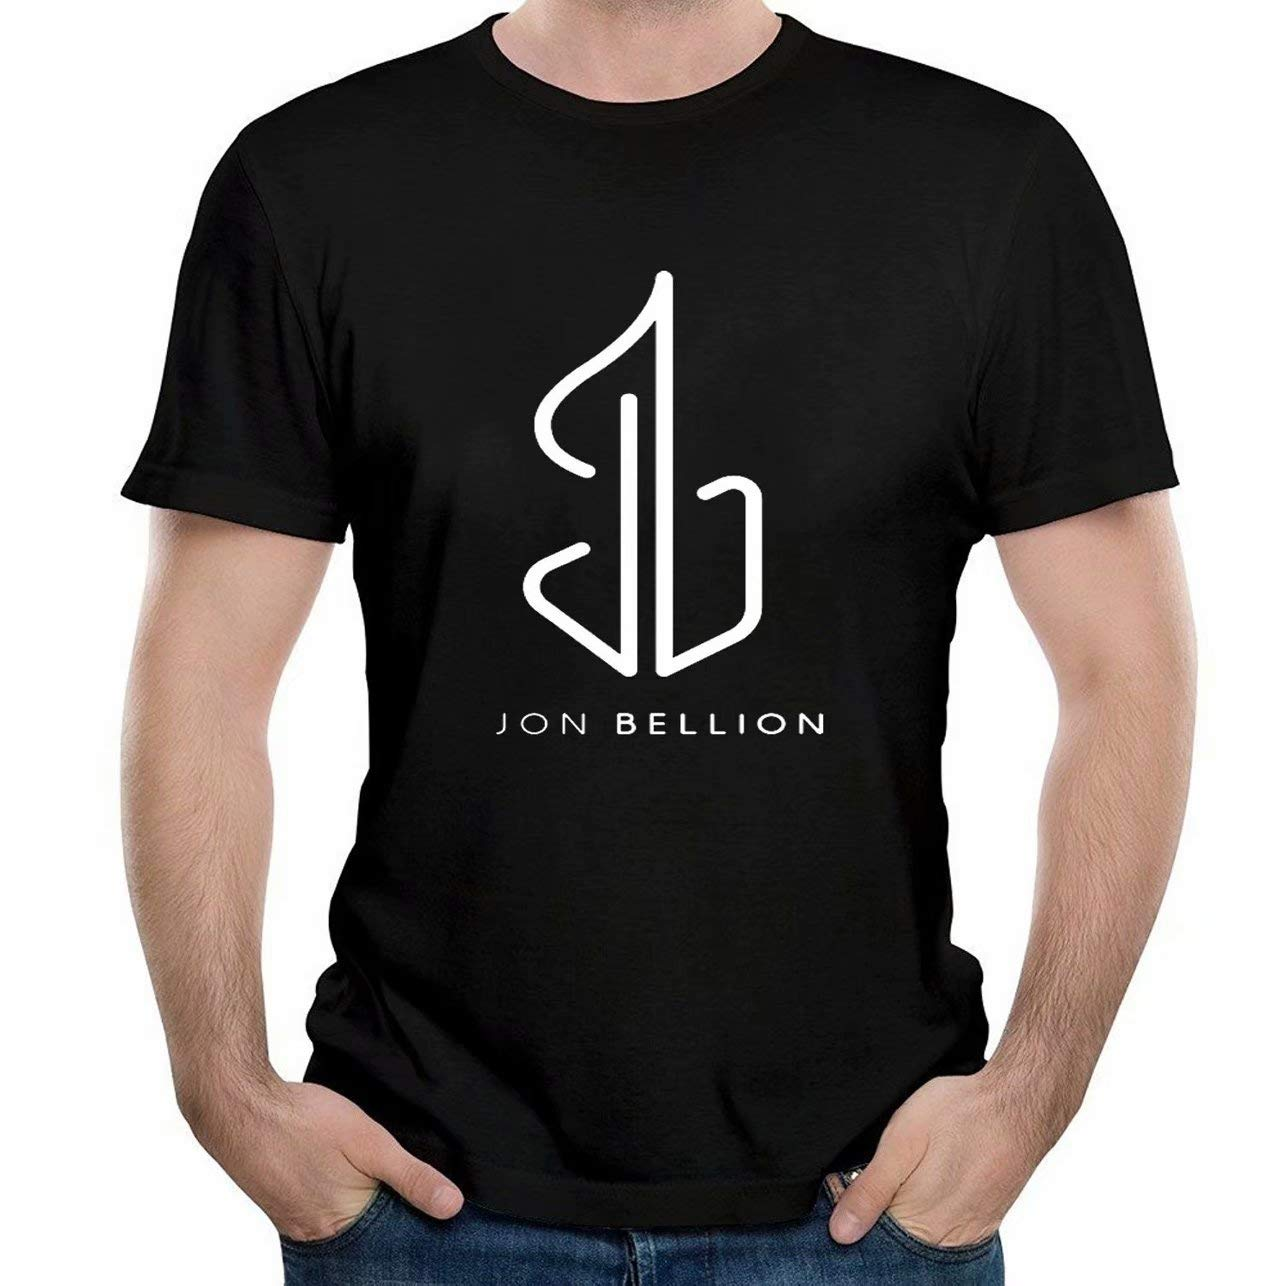 S Tshirts Jo Seven Bell Seven Ion Logo Funny Graphics T Shirt For